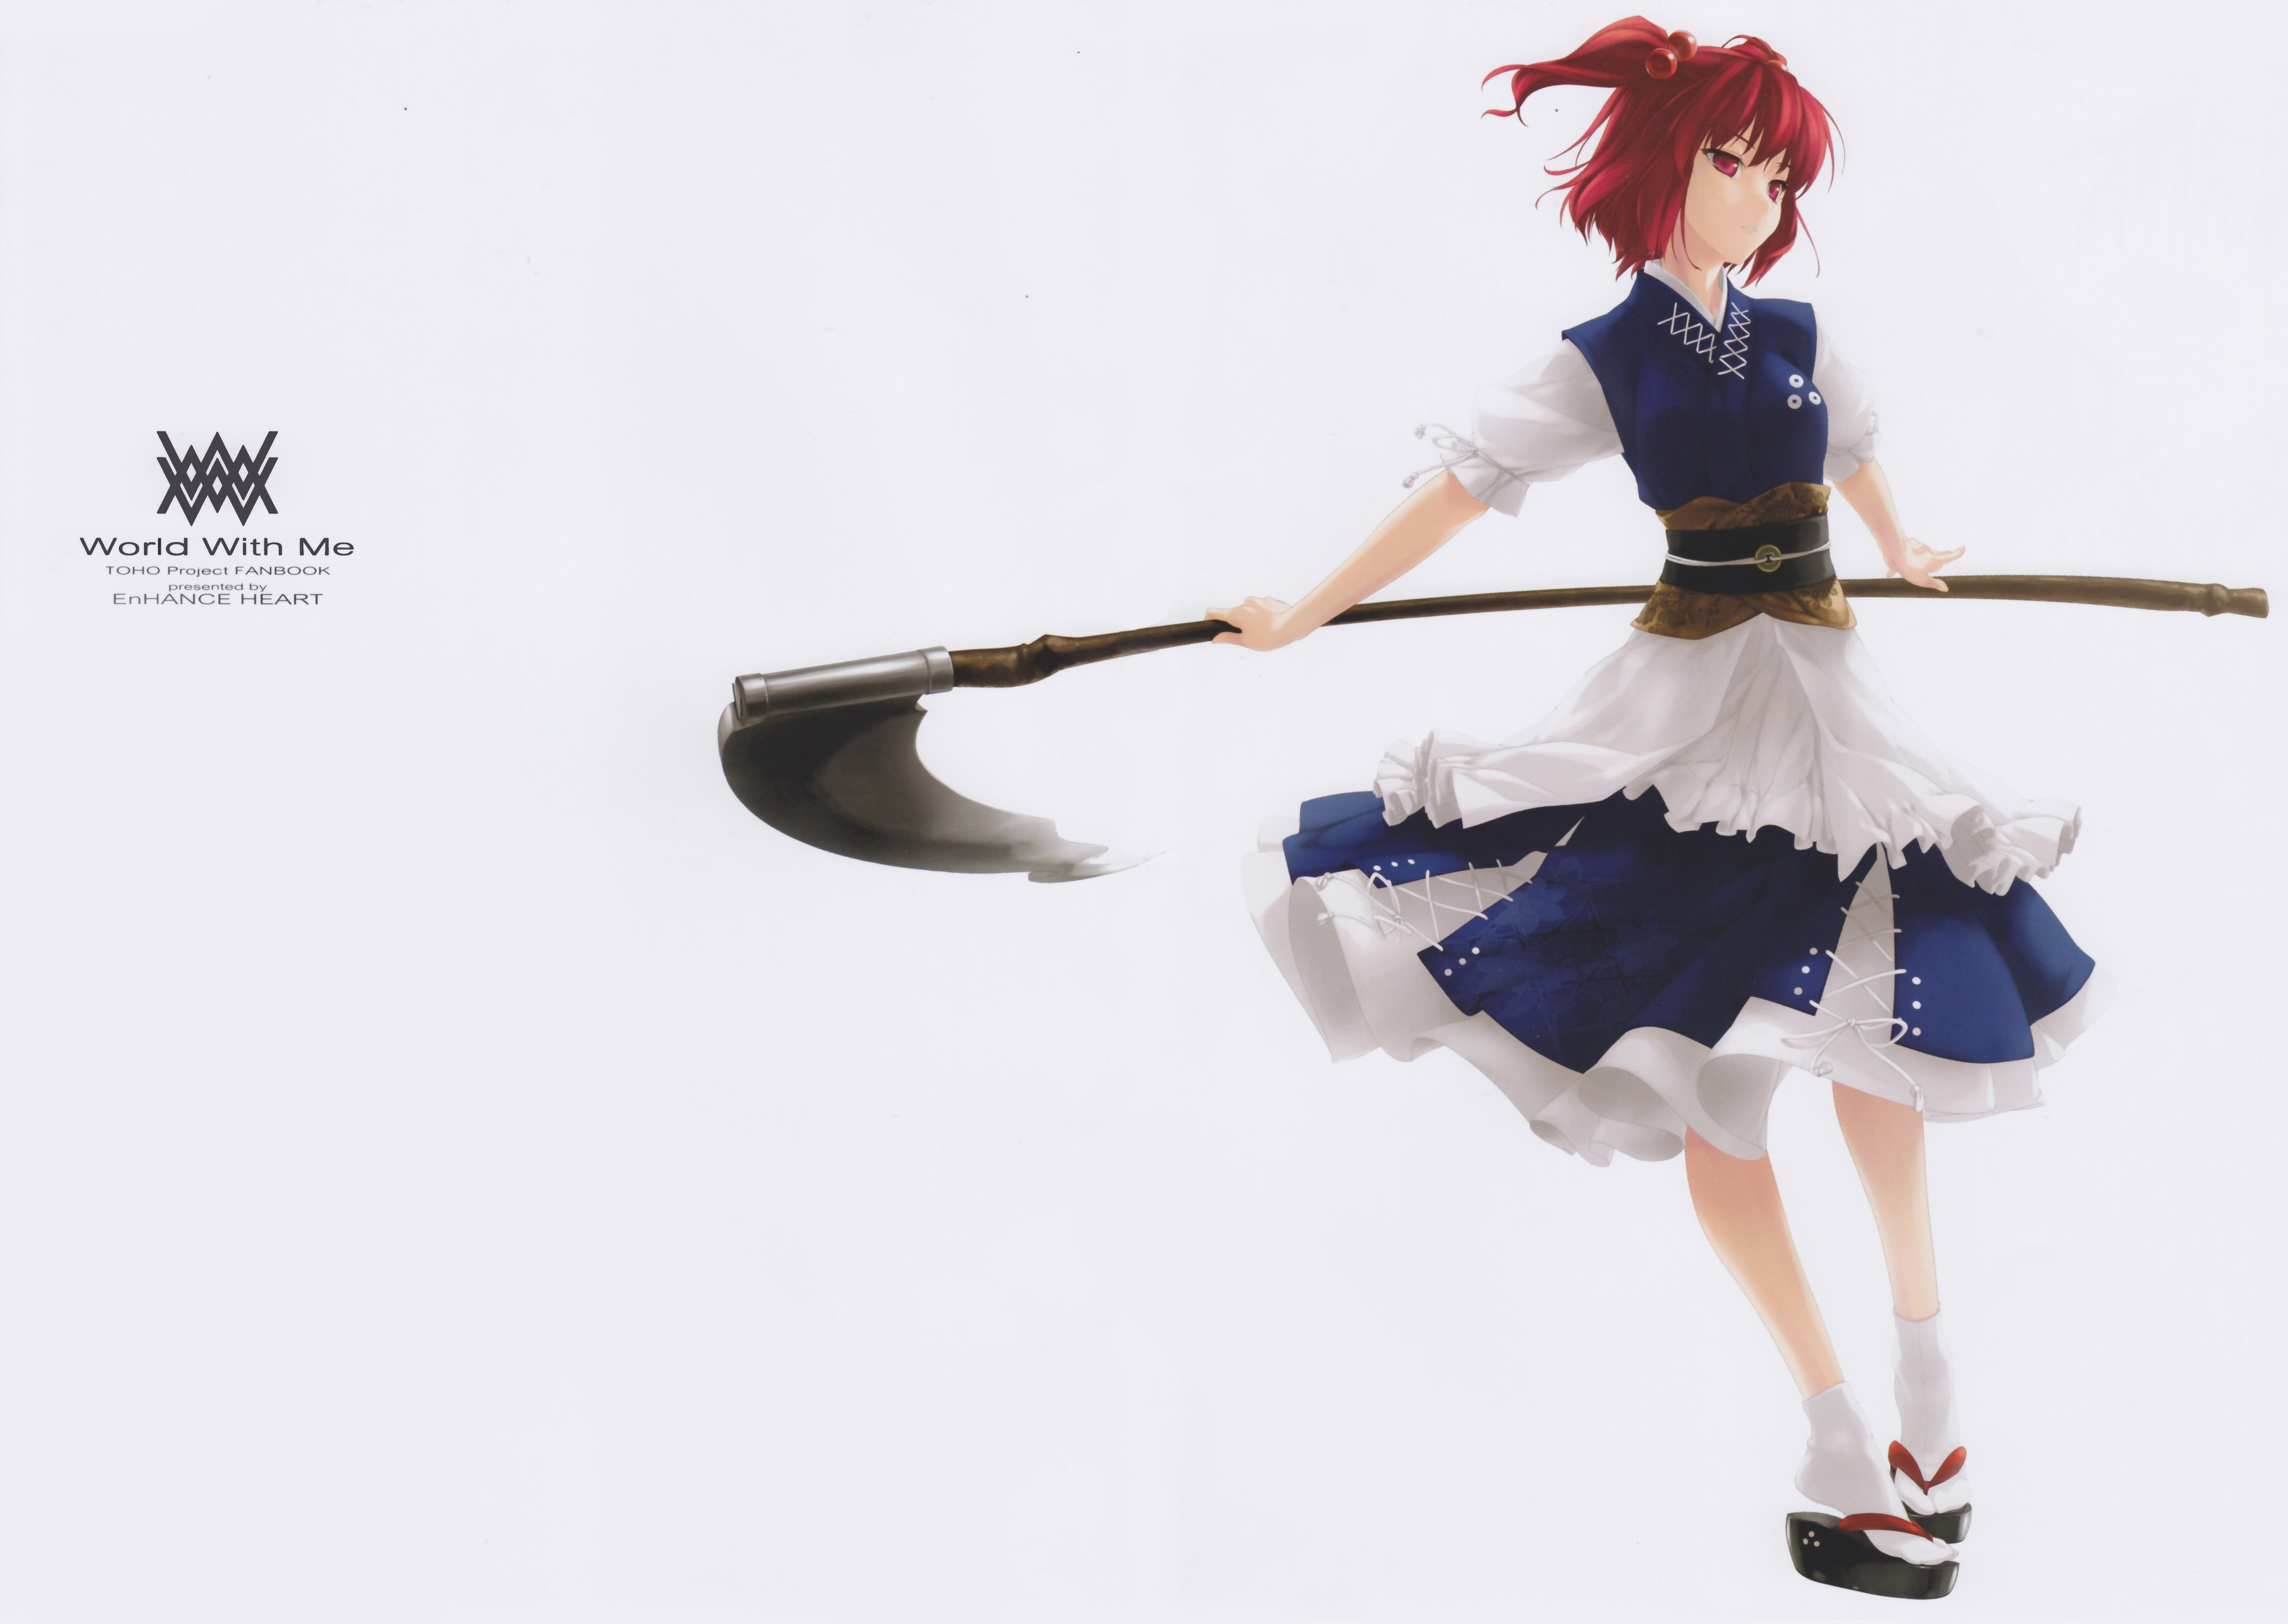 touhou text scythe redheads HD Wallpaper